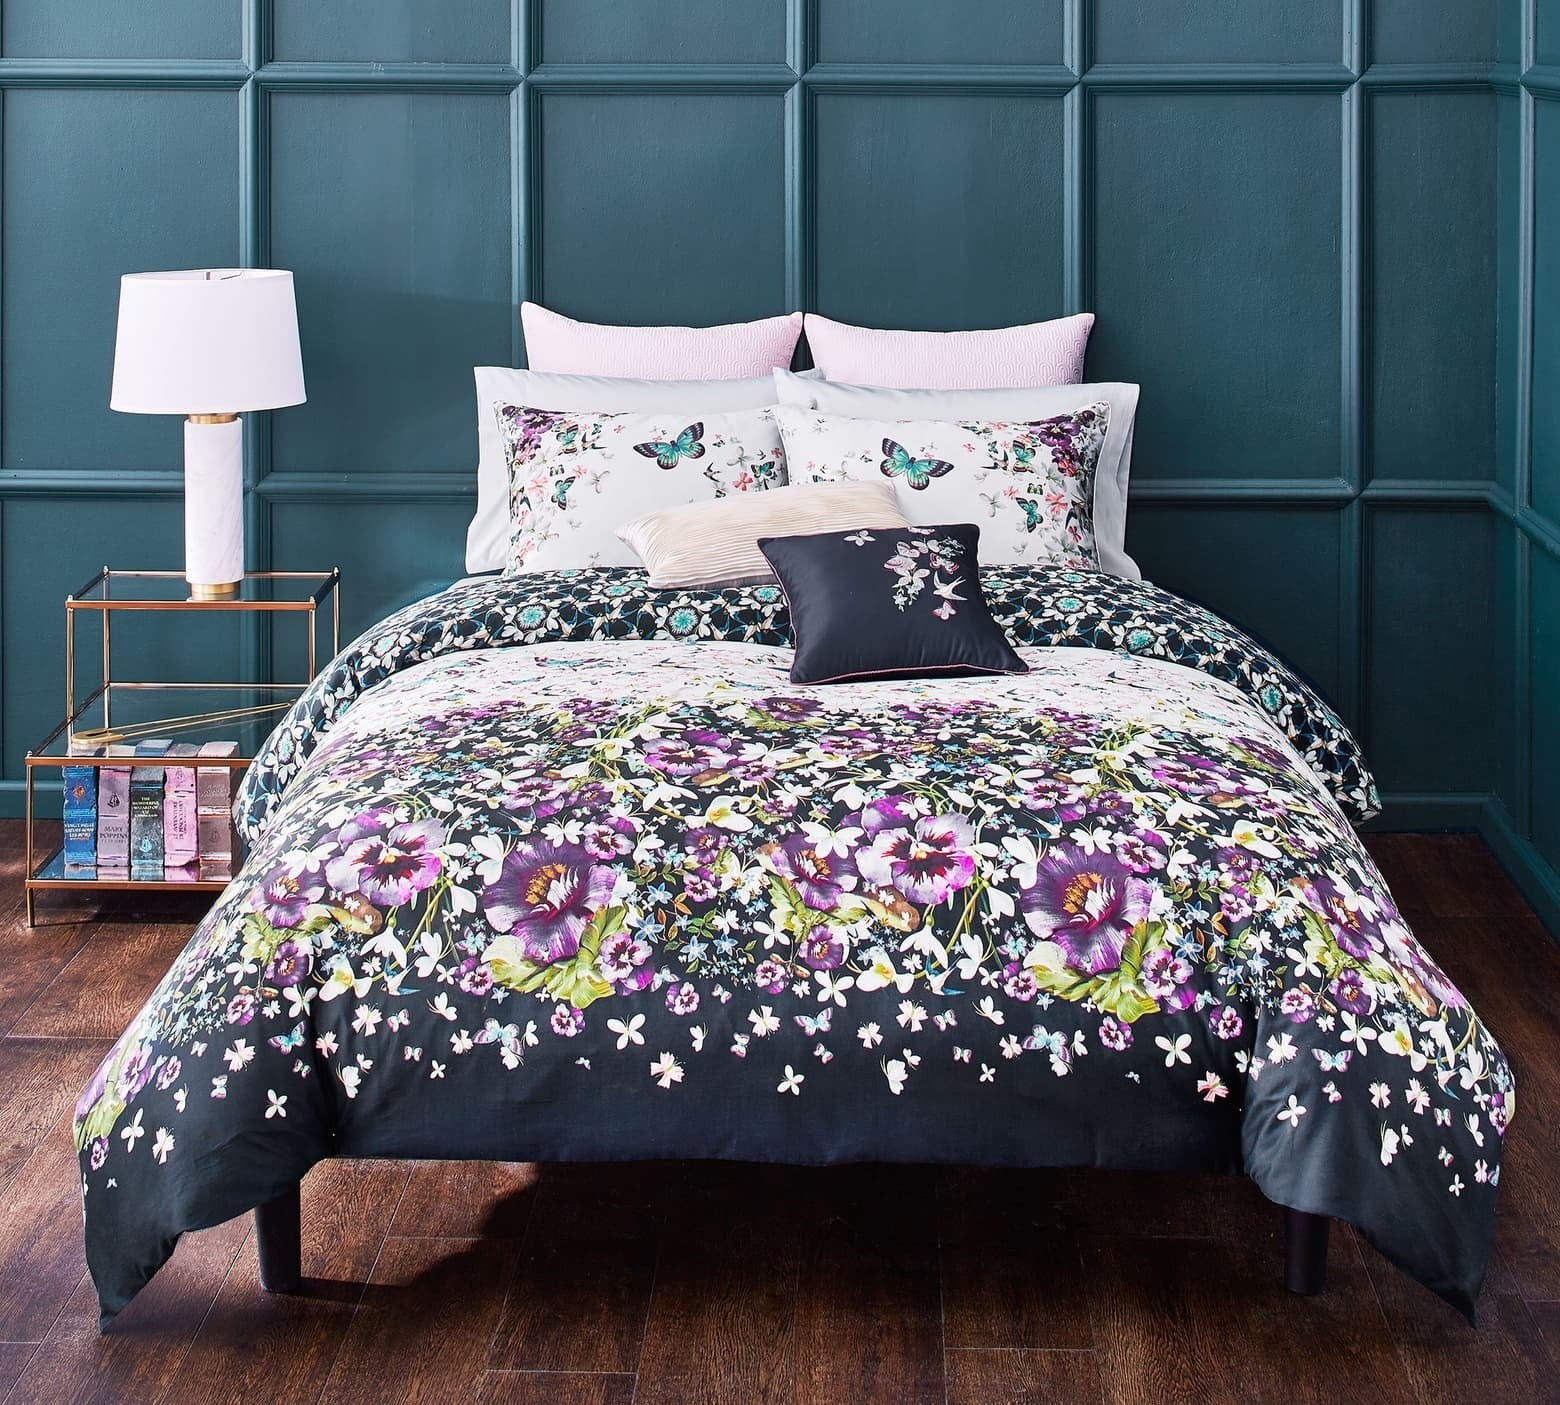 Floral comforter in navy with purple and green flowers all over it on a bed with pillows with floral and butterflies on them